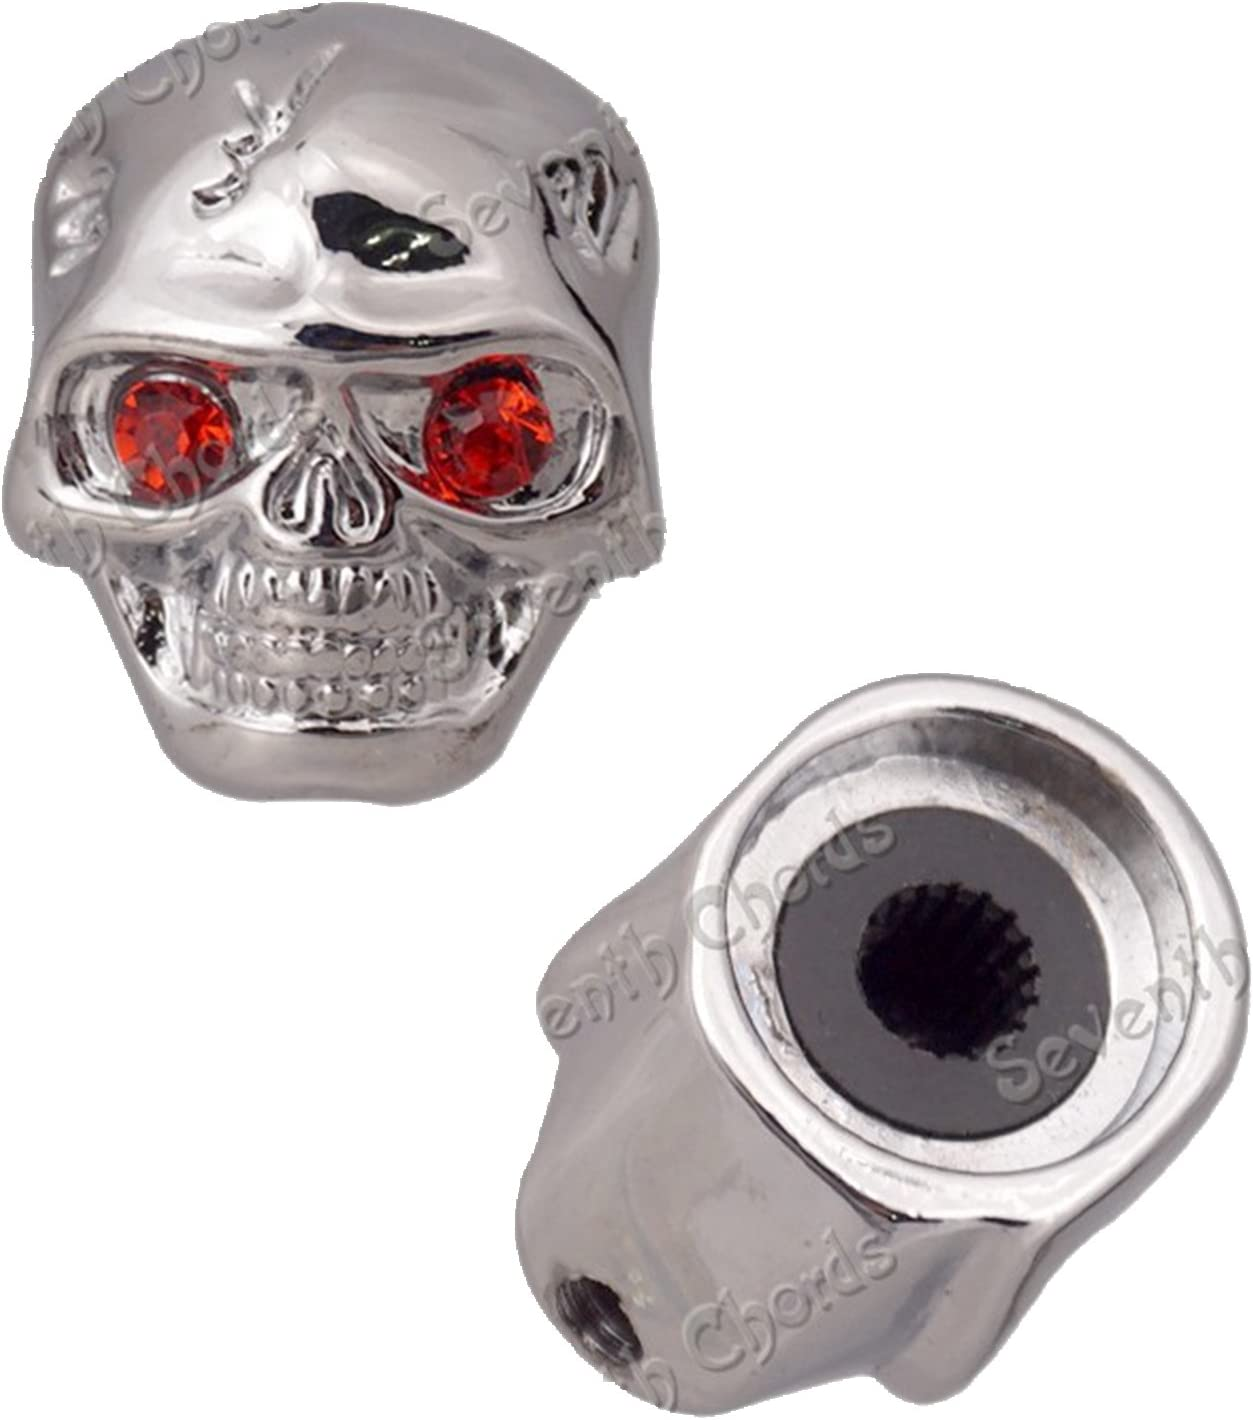 Black 4 Pcs Metal Skull Head Volume Tone Control Knobs for Electric Guitar Bass Replacement Parts